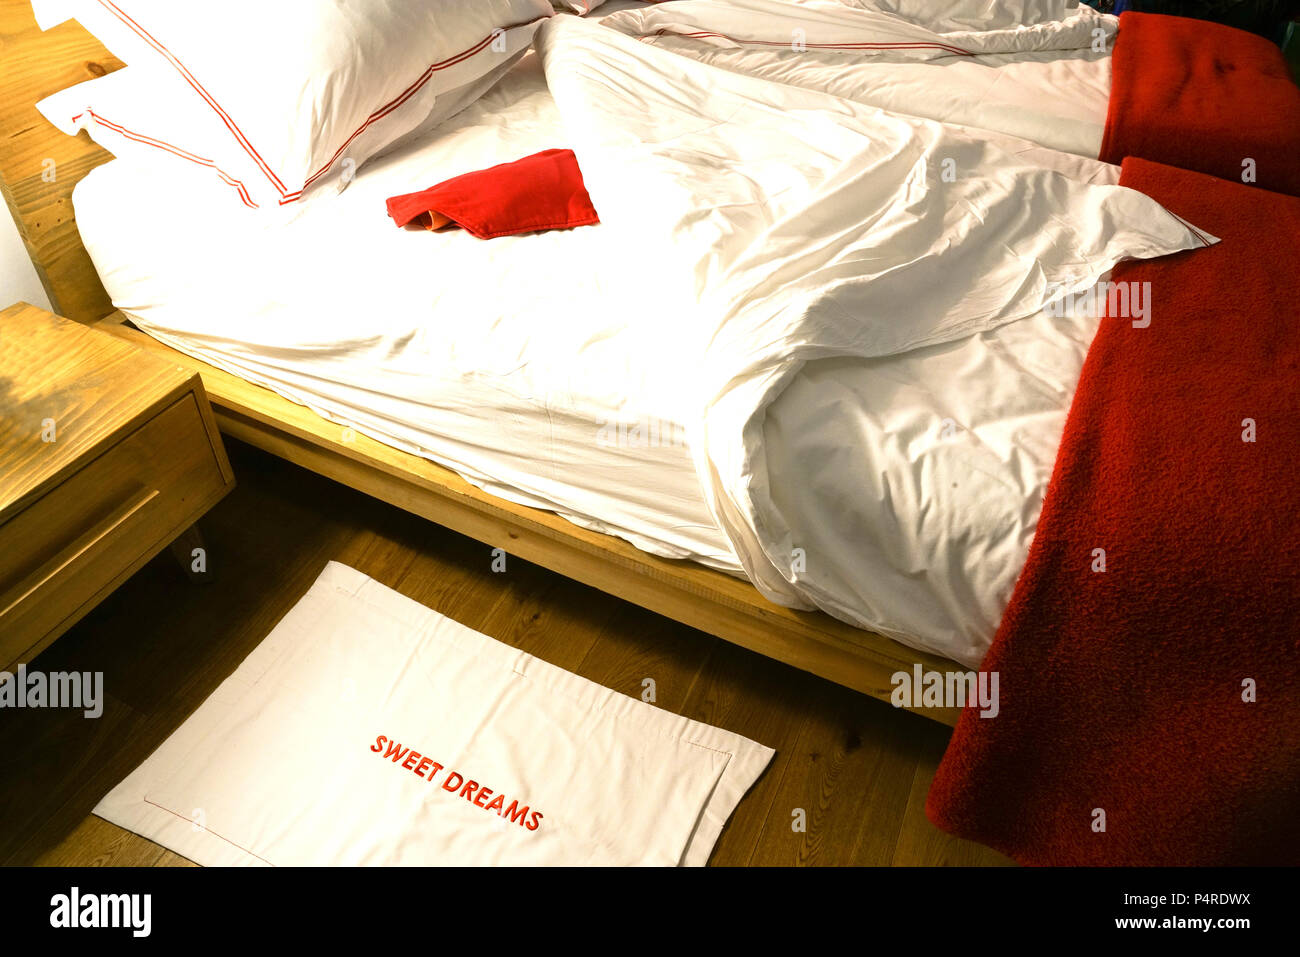 Double bed pulled back with ruffled untidy sheets with red hotwater bottle waiting. - Stock Image